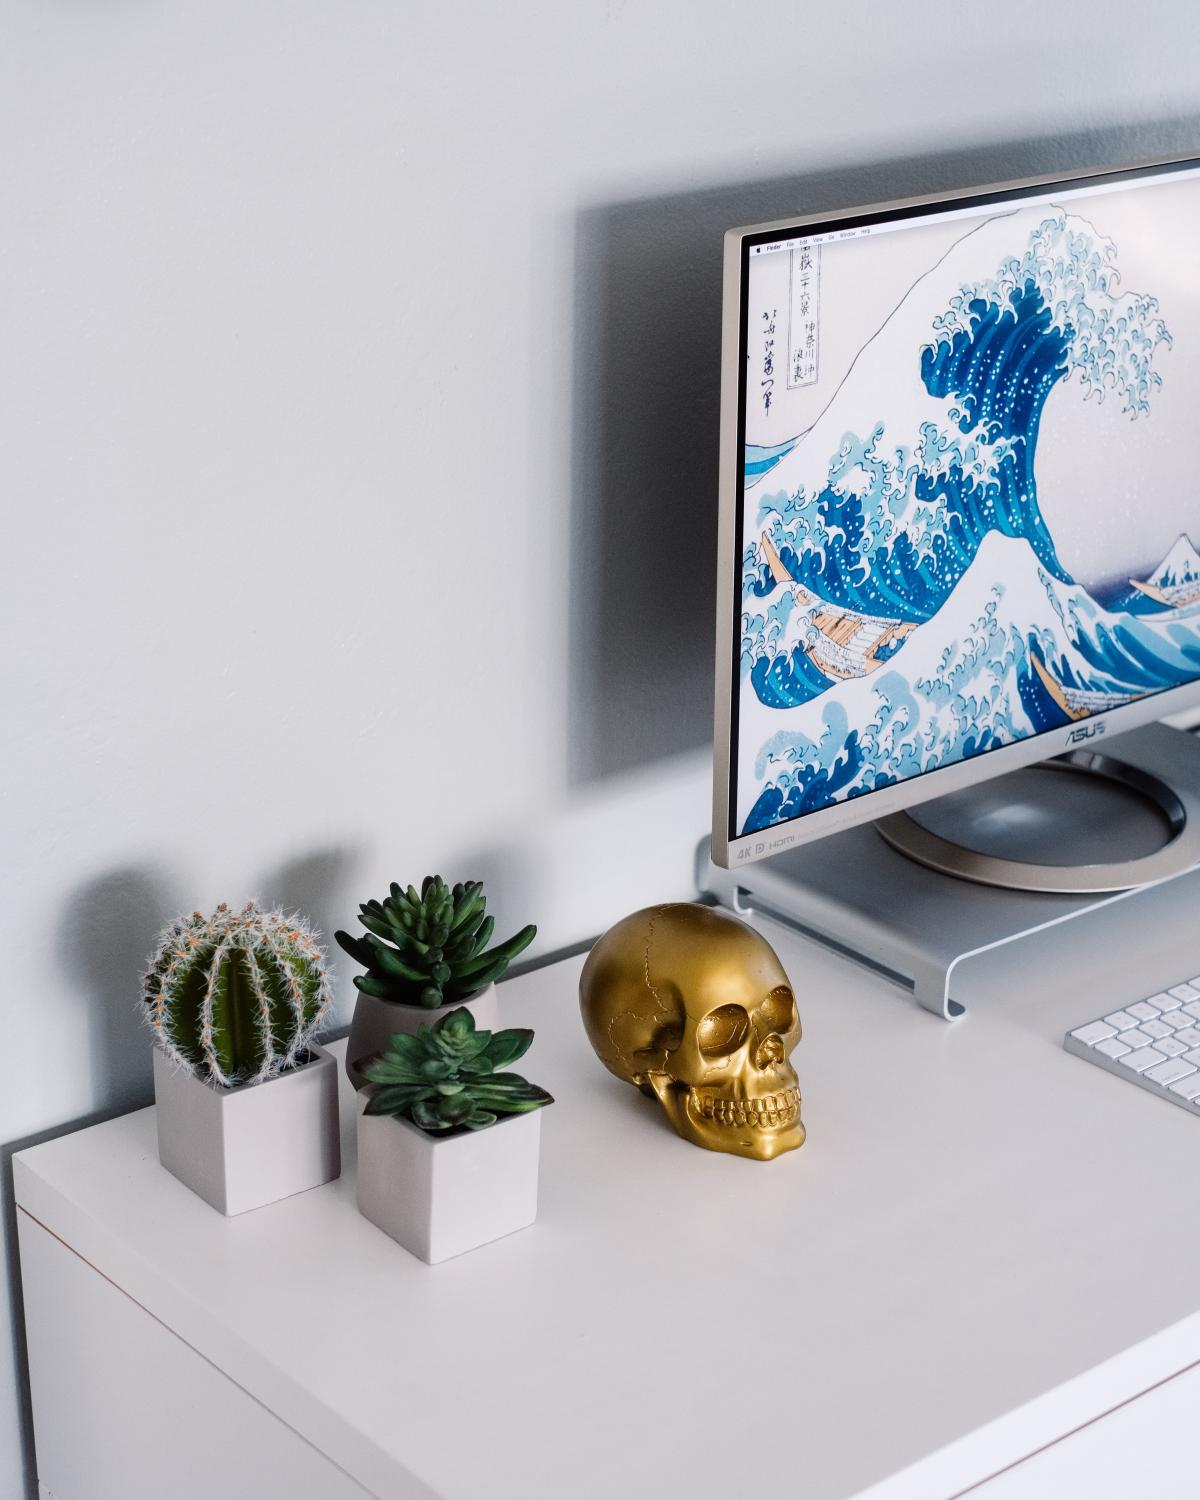 Computer Monitor Business